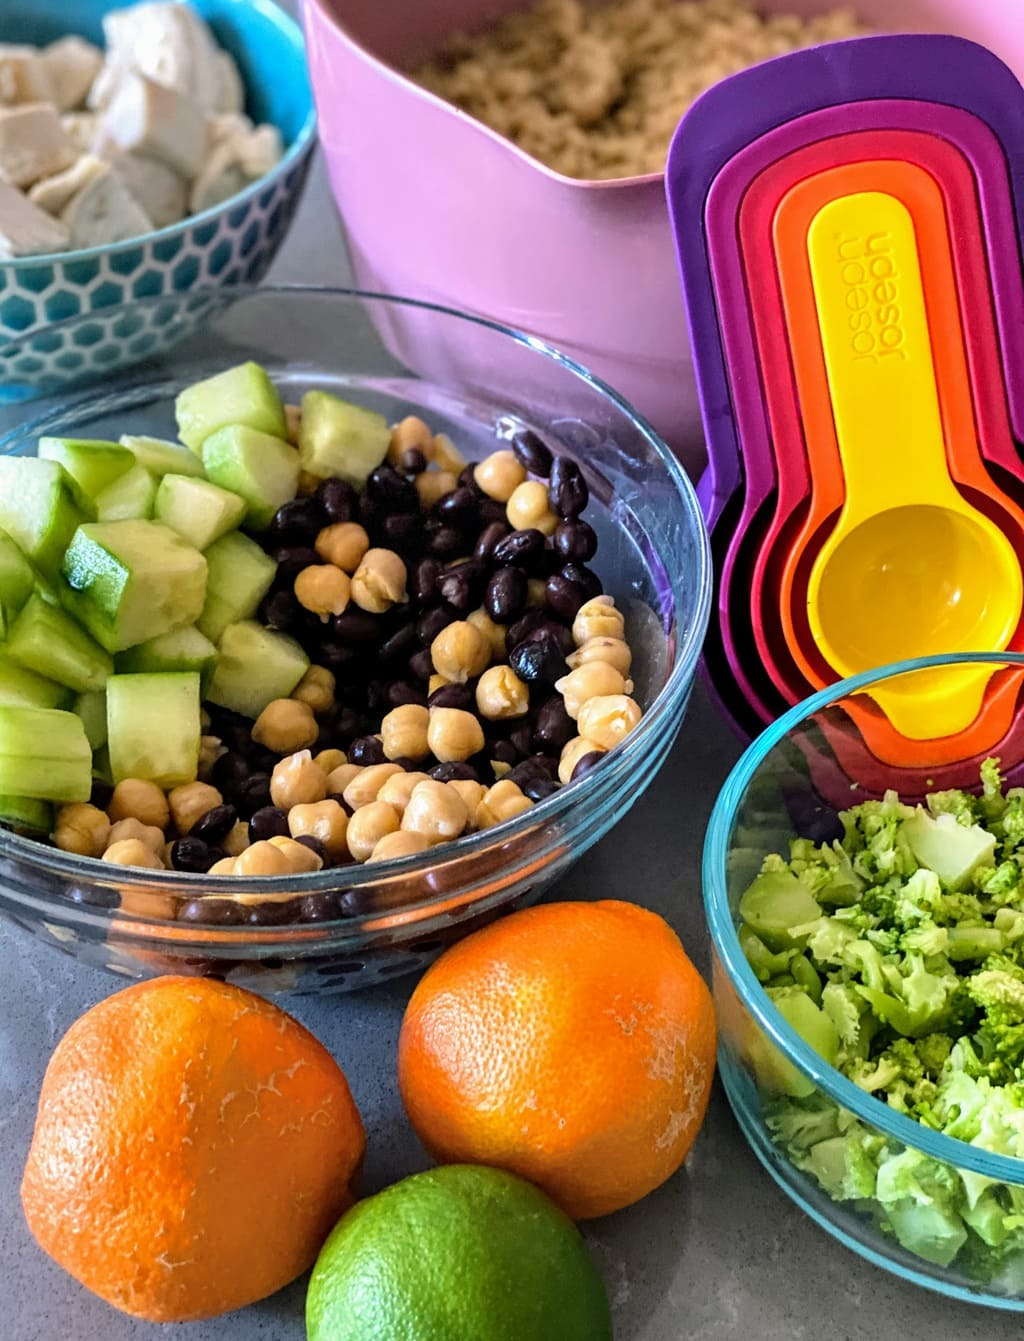 on table: citrus fruit, colorful measuring cups, bowl of chopped broccoli, bowl of chopped cucumber and beans, blue bowl of chicken and pink bowl of cooked quinoa